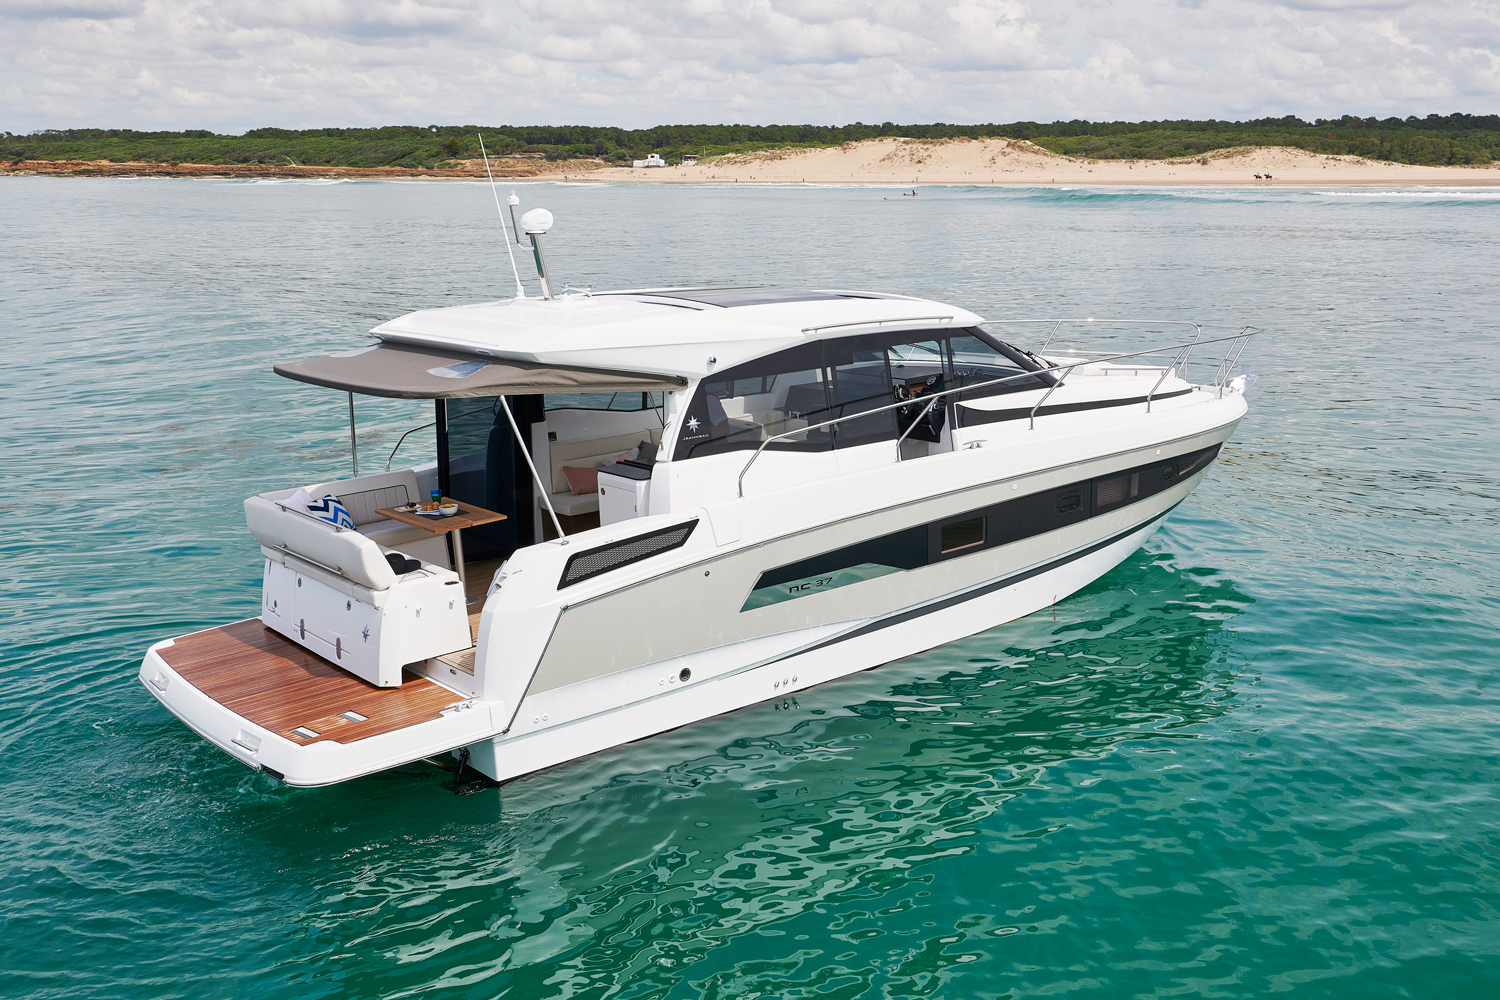 Lovely Jeanneau new NC37